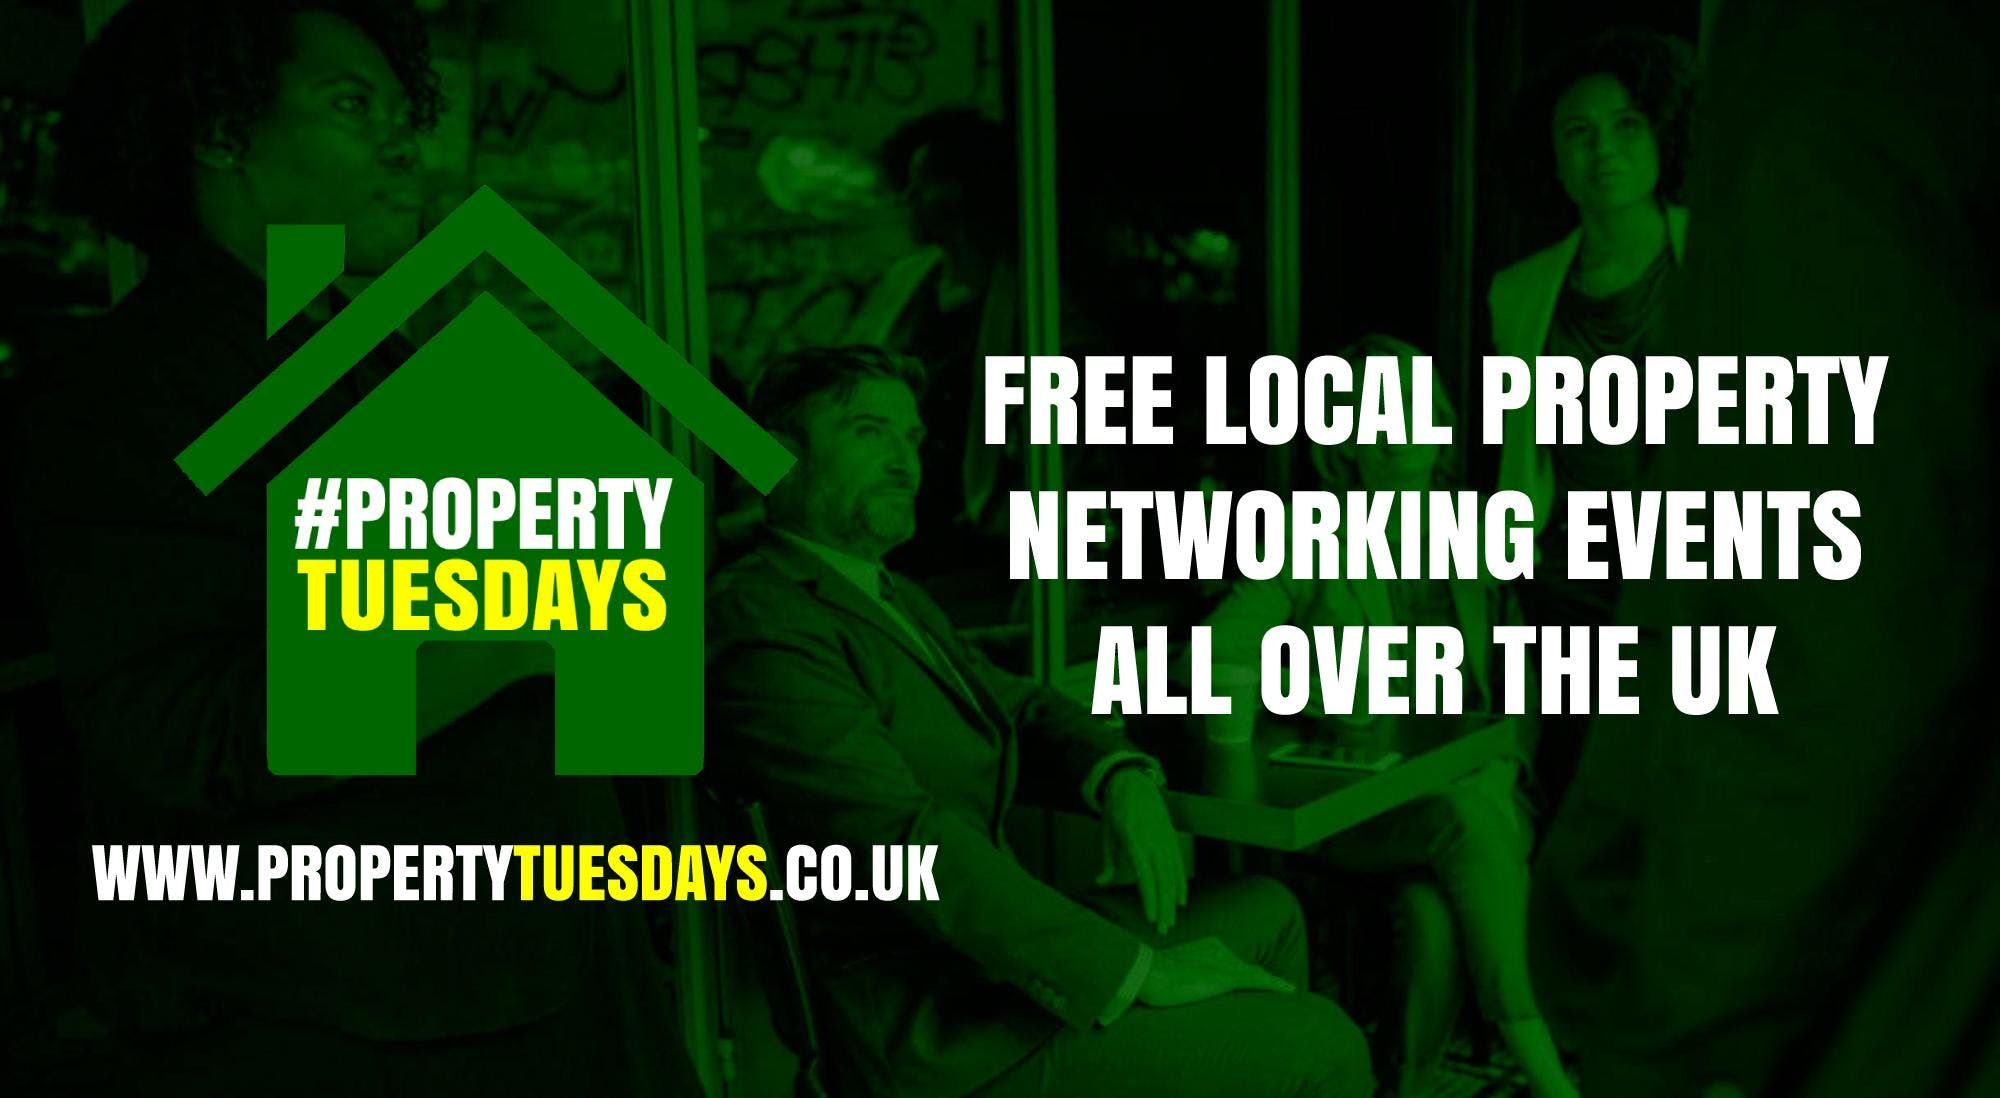 Property Tuesdays! Free property networking event in Wath-upon-Dearne